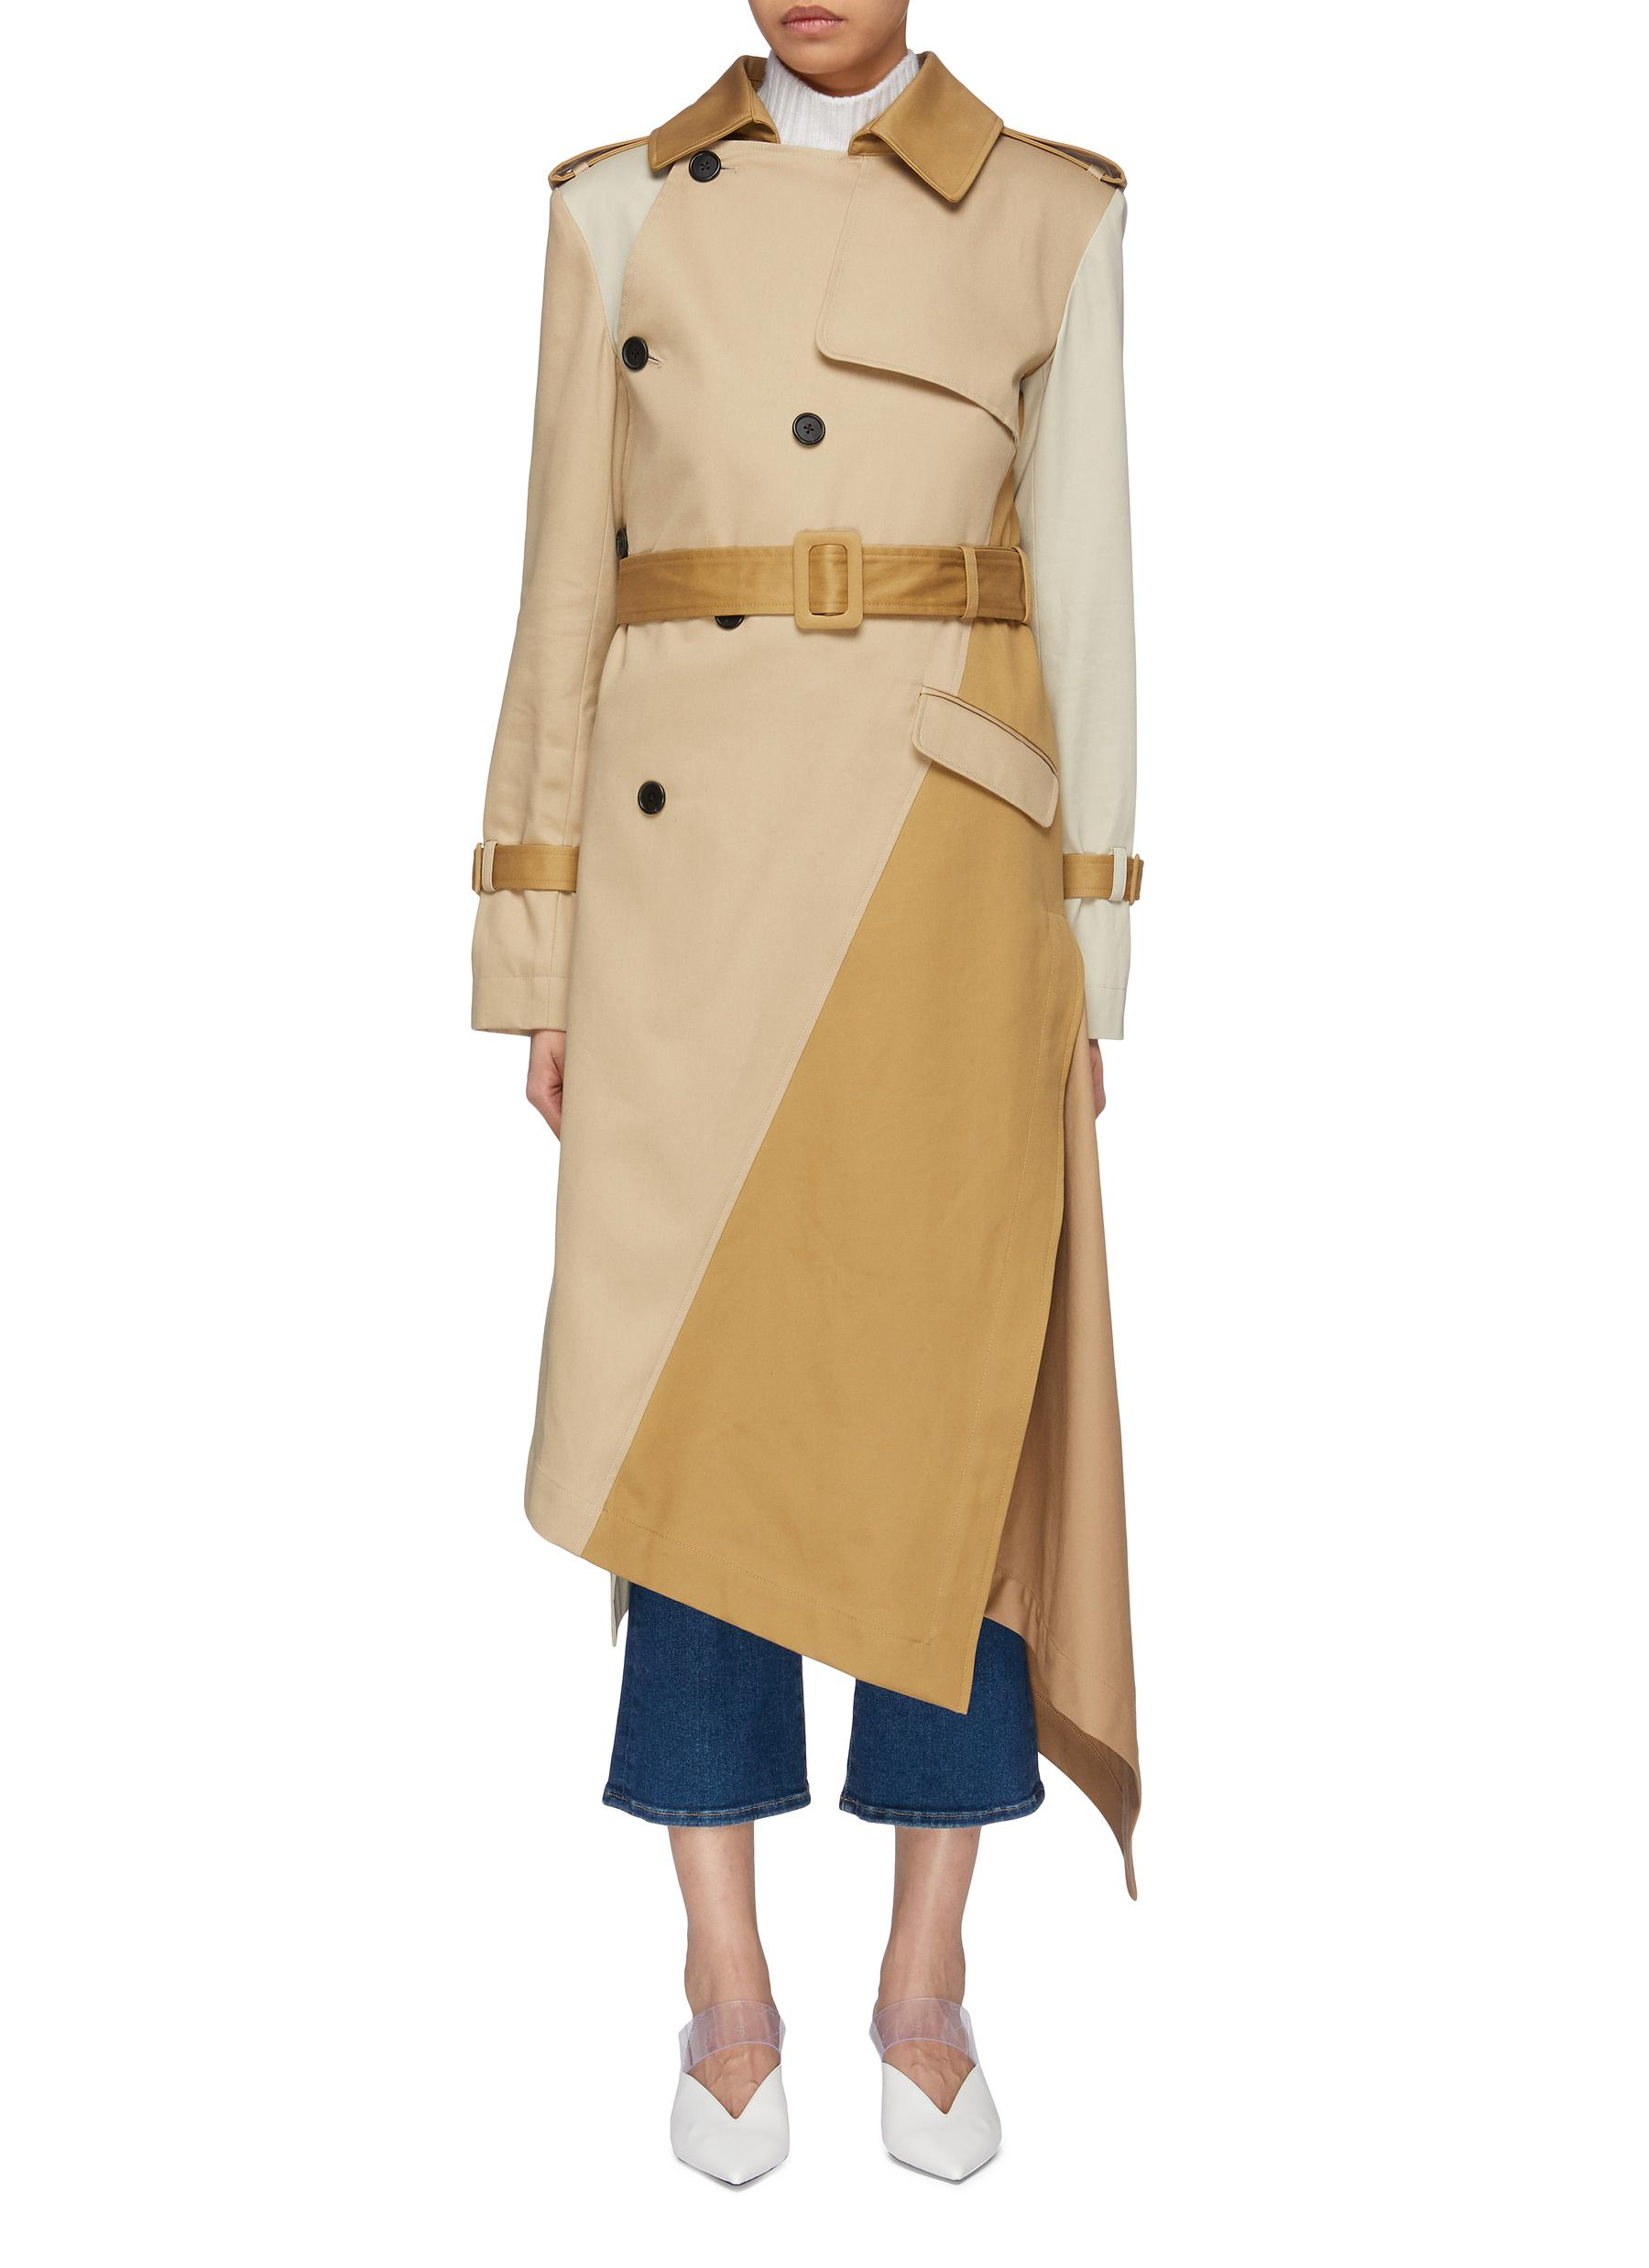 Belted asymmetric patchwork trench coat by Monse